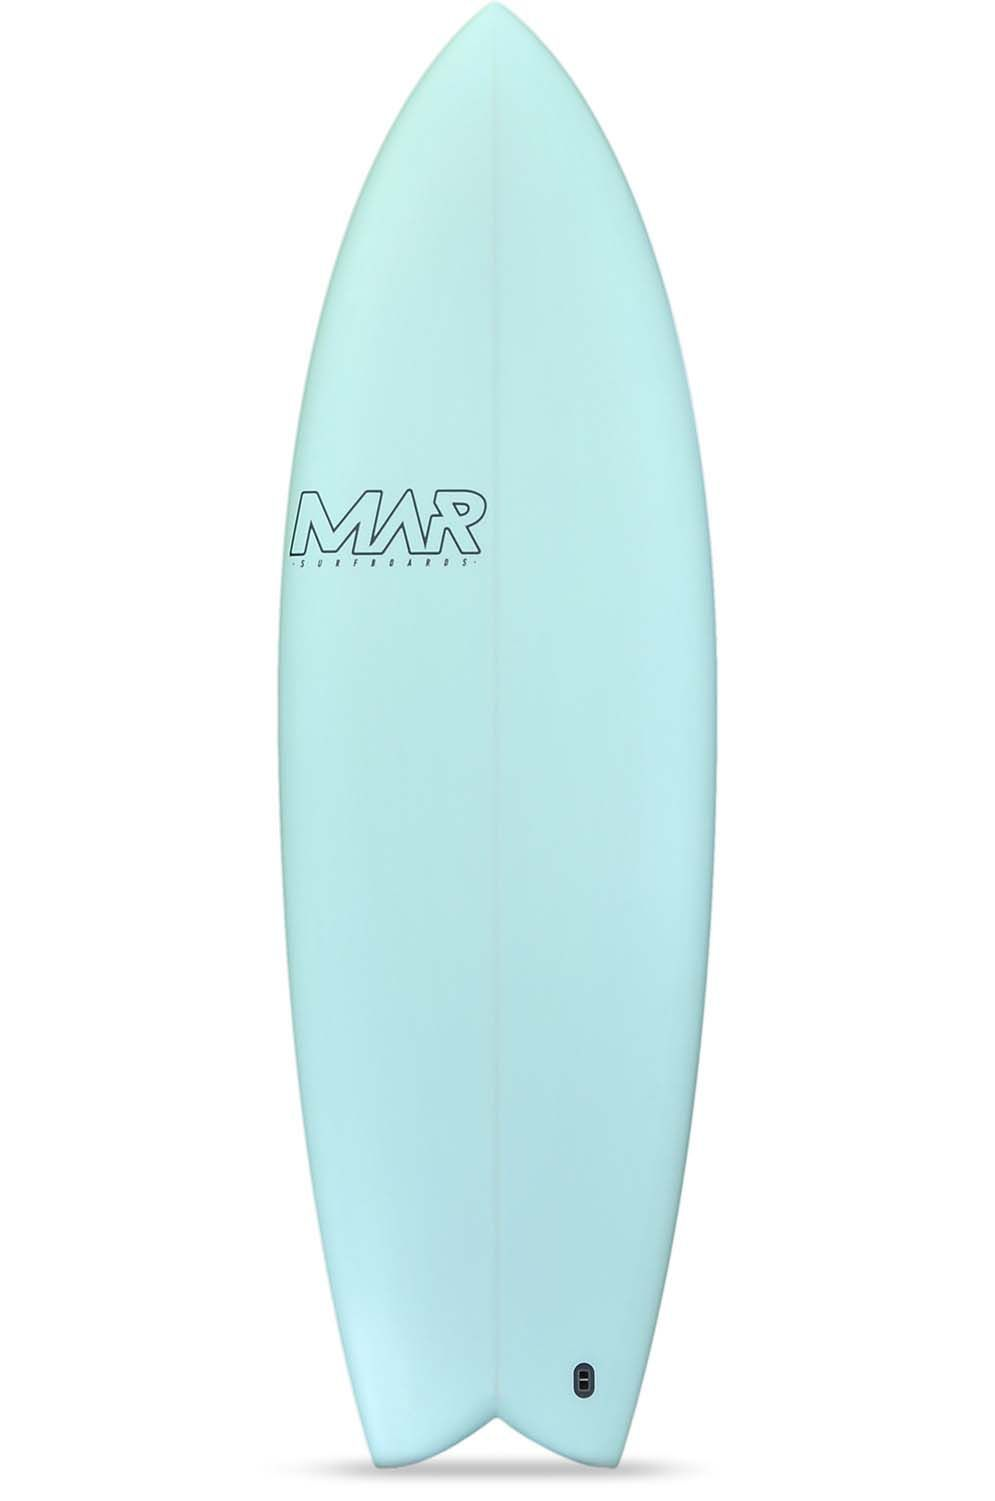 Prancha Surf Mar 5'6 THE 4 PU Swallow Tail - Color FCS II Multisystem 5ft6